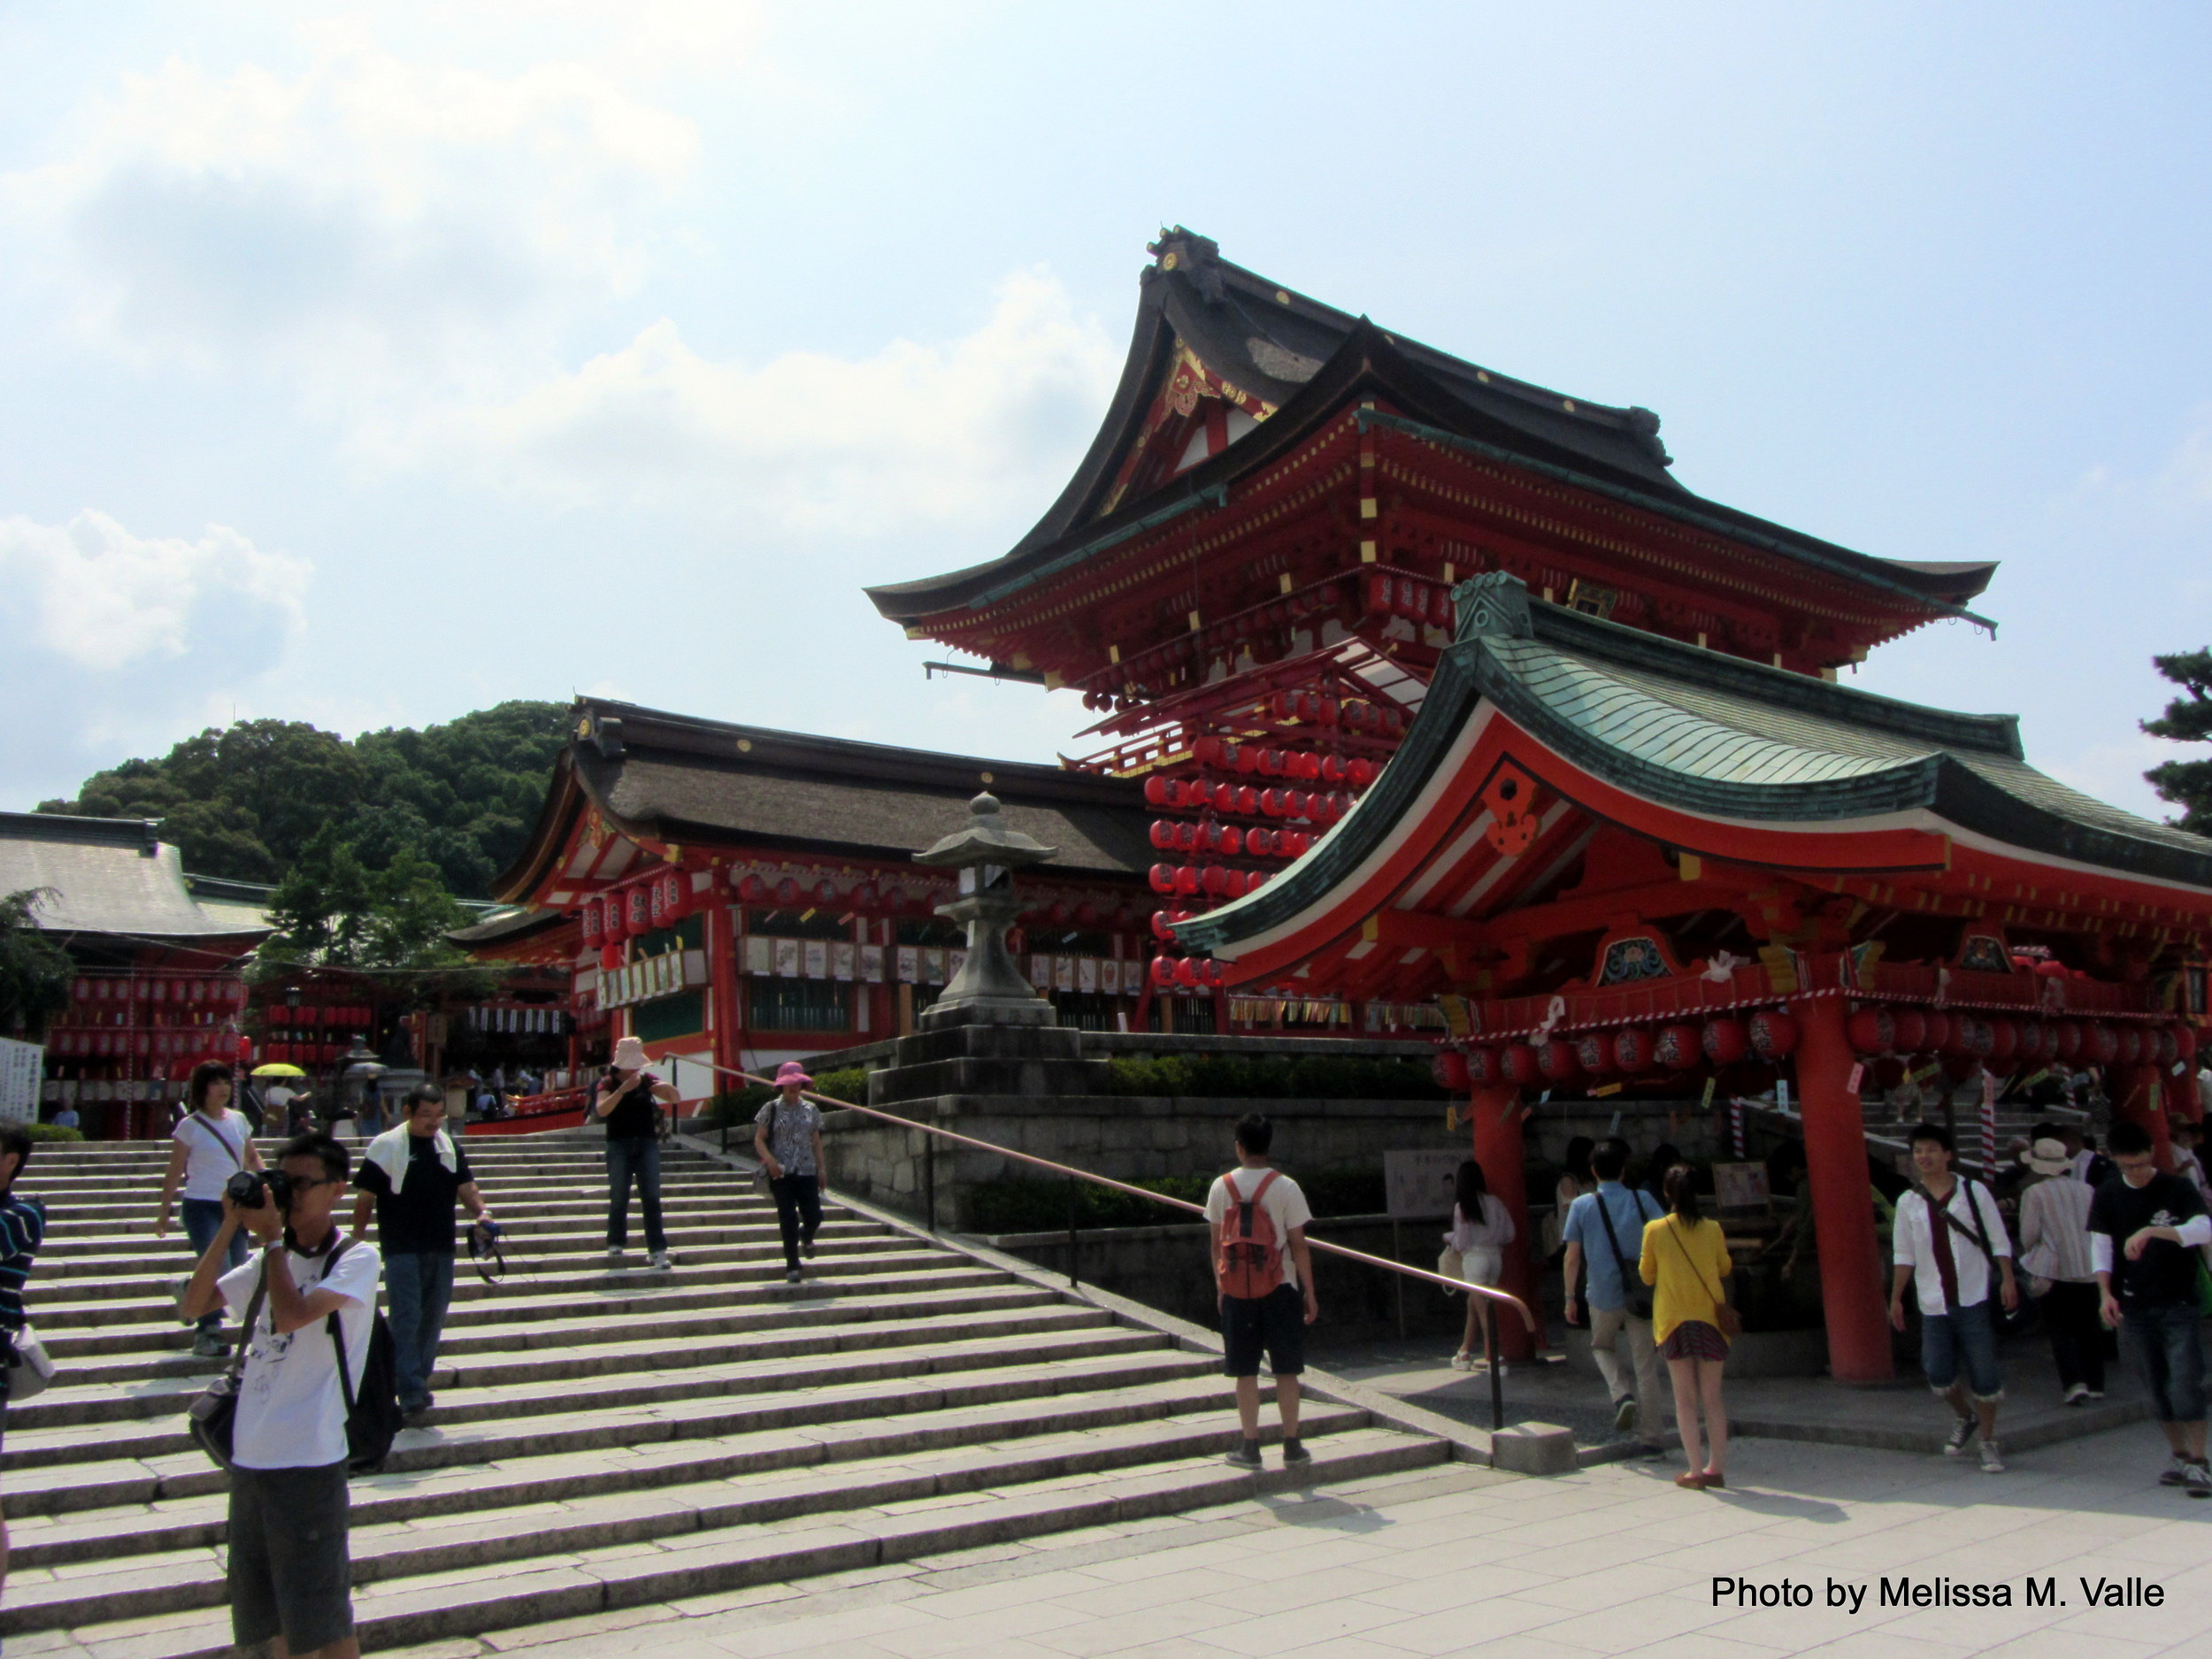 7.19.14 Kyoto, Japan- Fushimi Inari Taisha Shrine (33).JPG